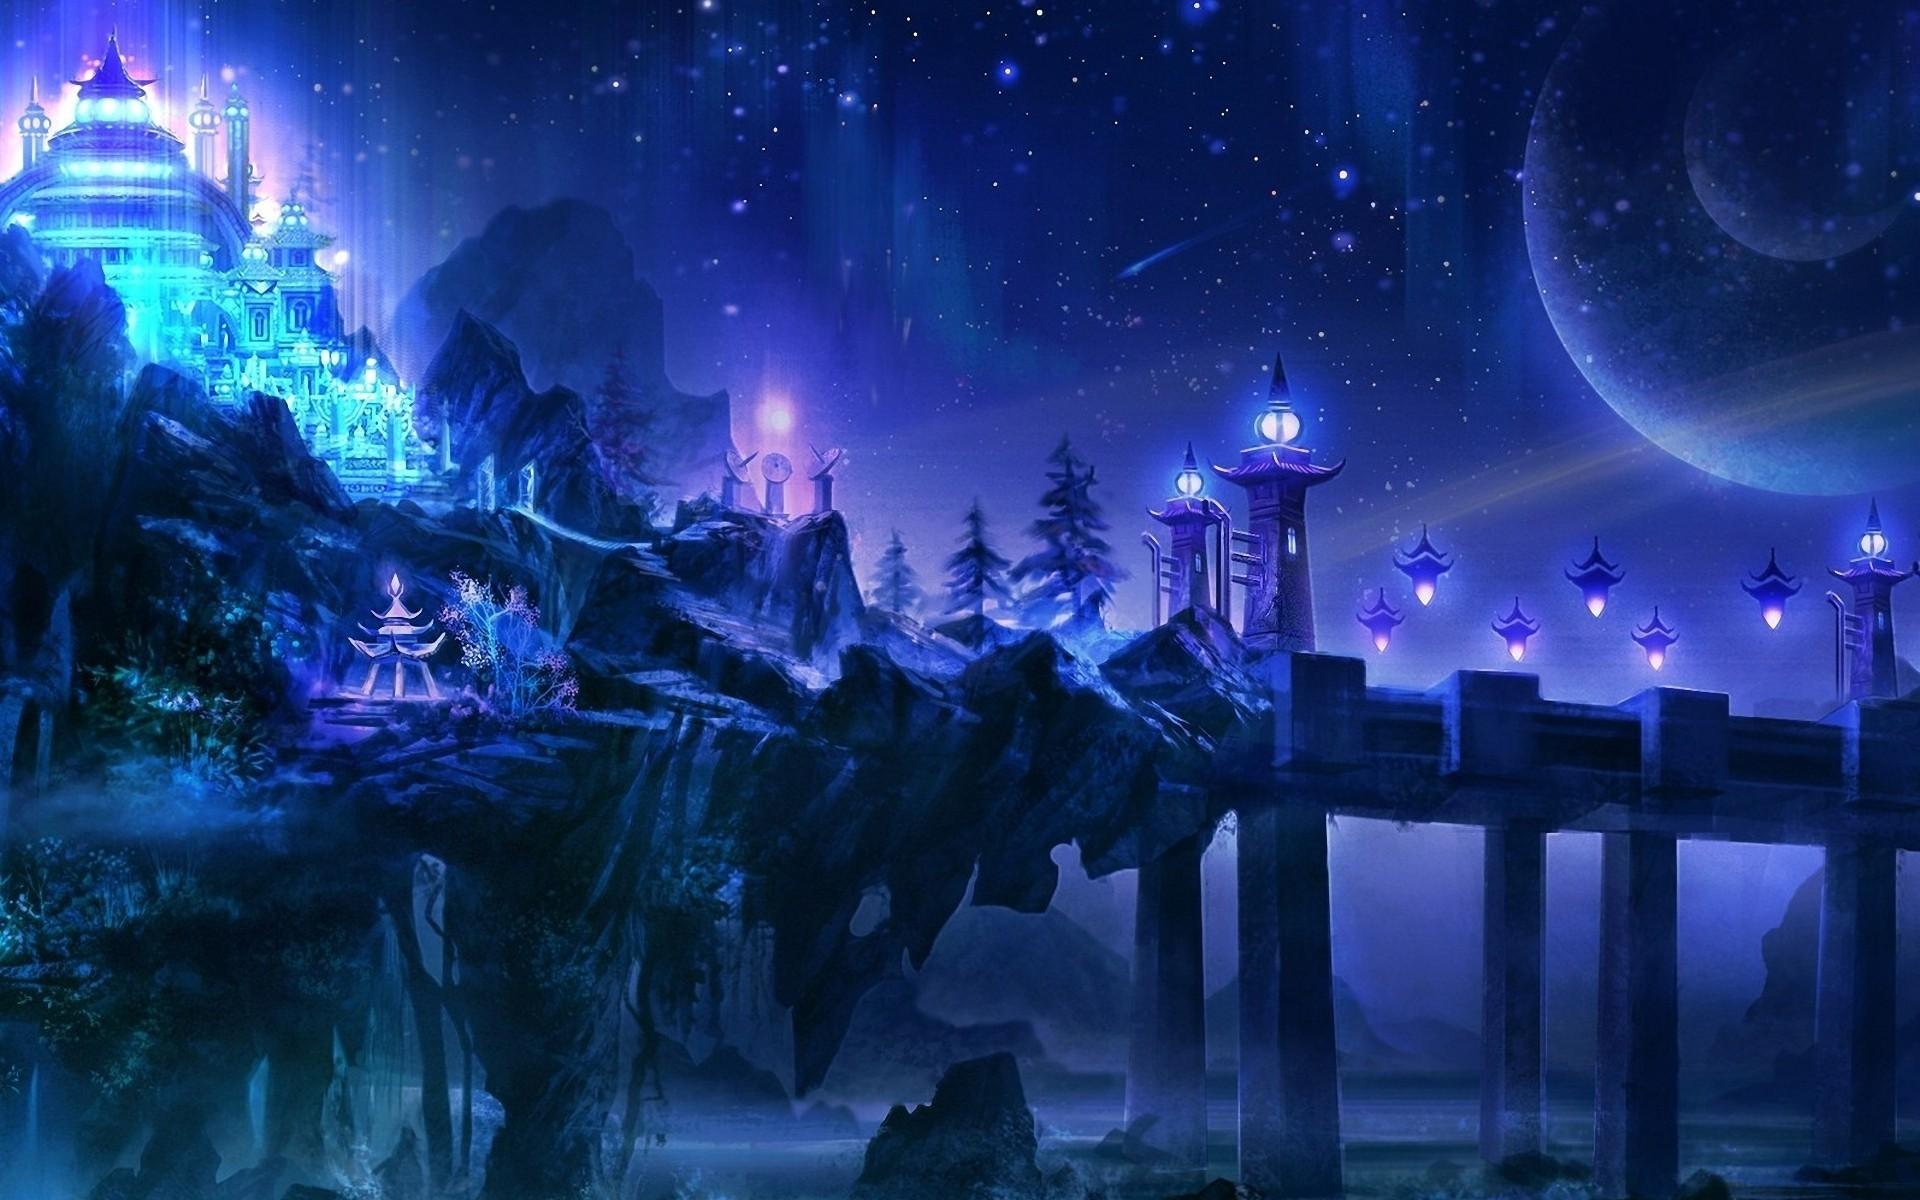 Magical Fantasy Hd Wallpapers That Will Take Your Breathe: Magical Wallpaper Images (74+ Images